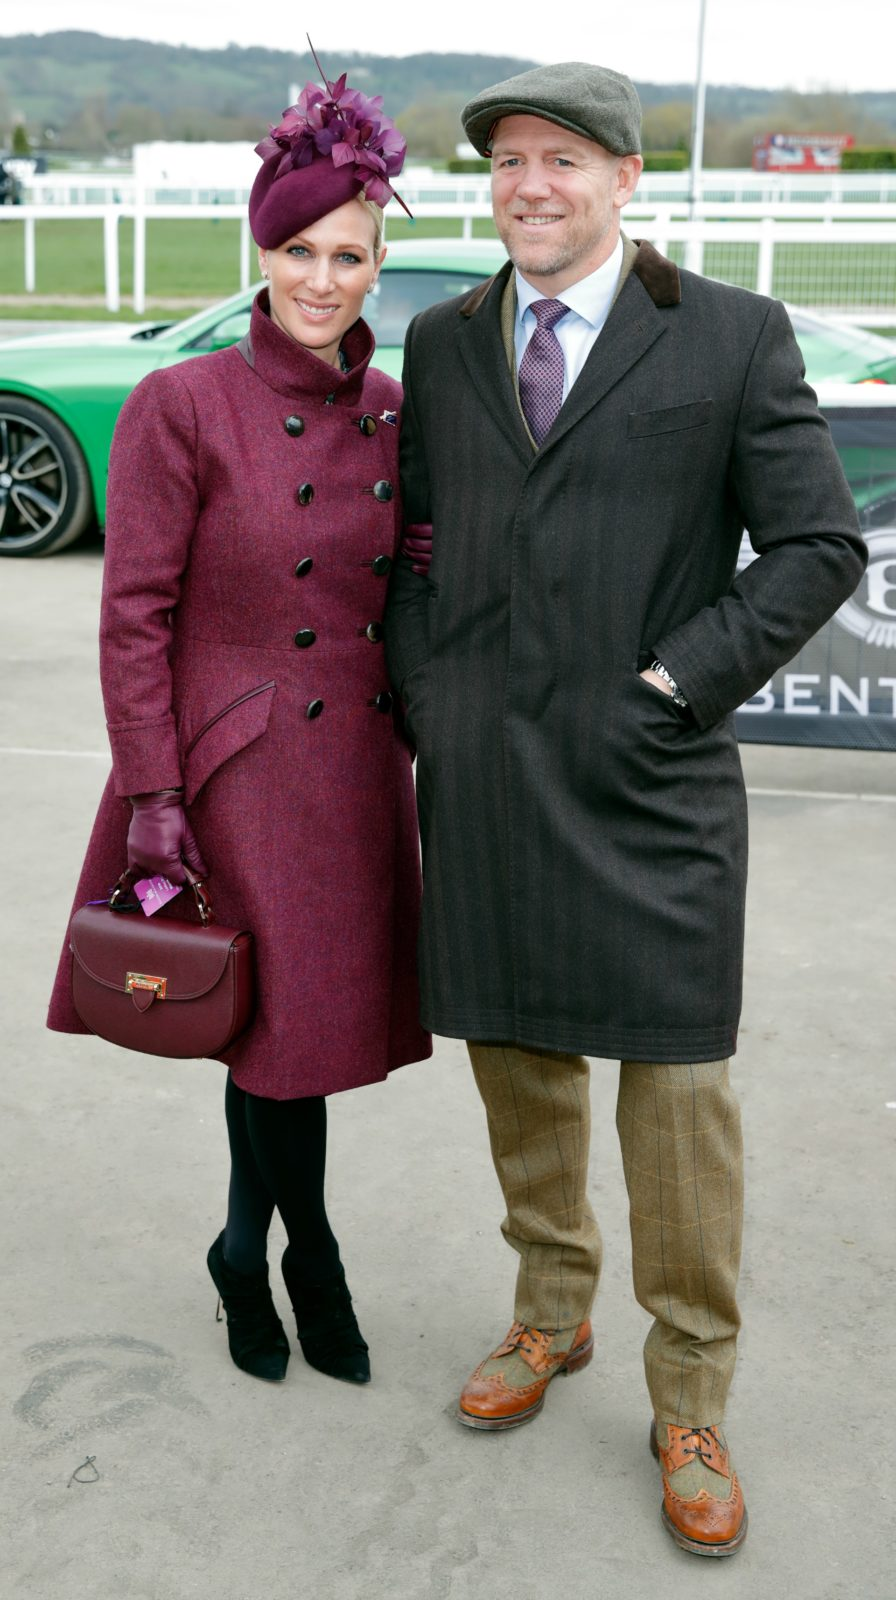 Zara opted for a deep purple outfit when she attended the races alongside Mike.